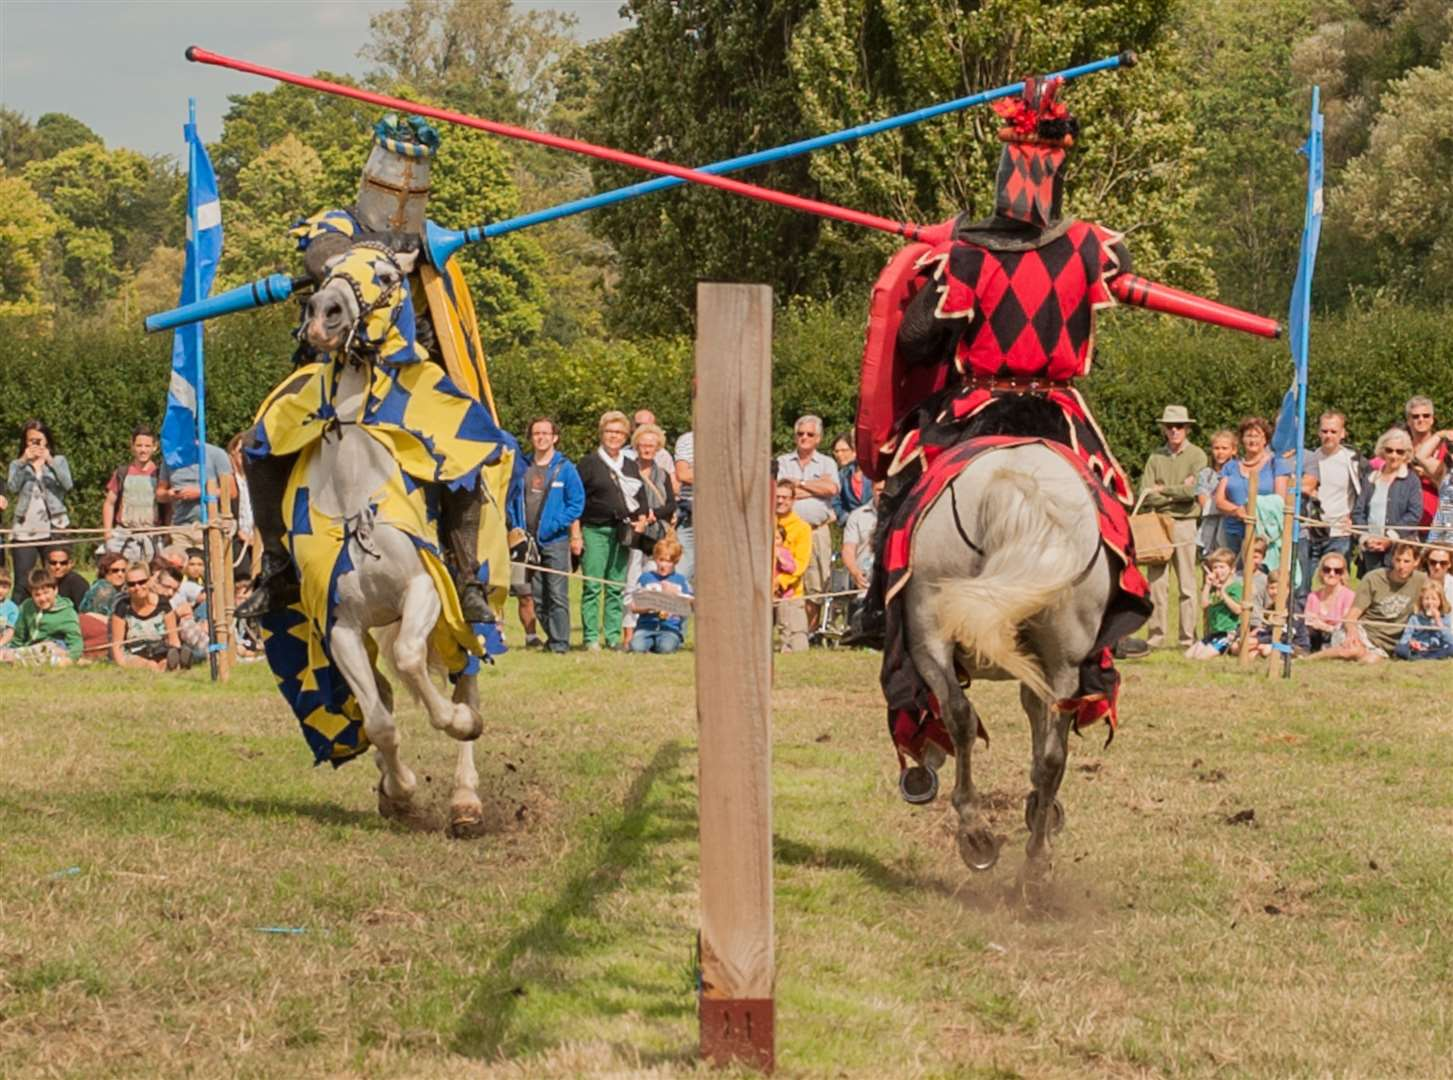 Jousting tournaments will be taking place at Hever Castle